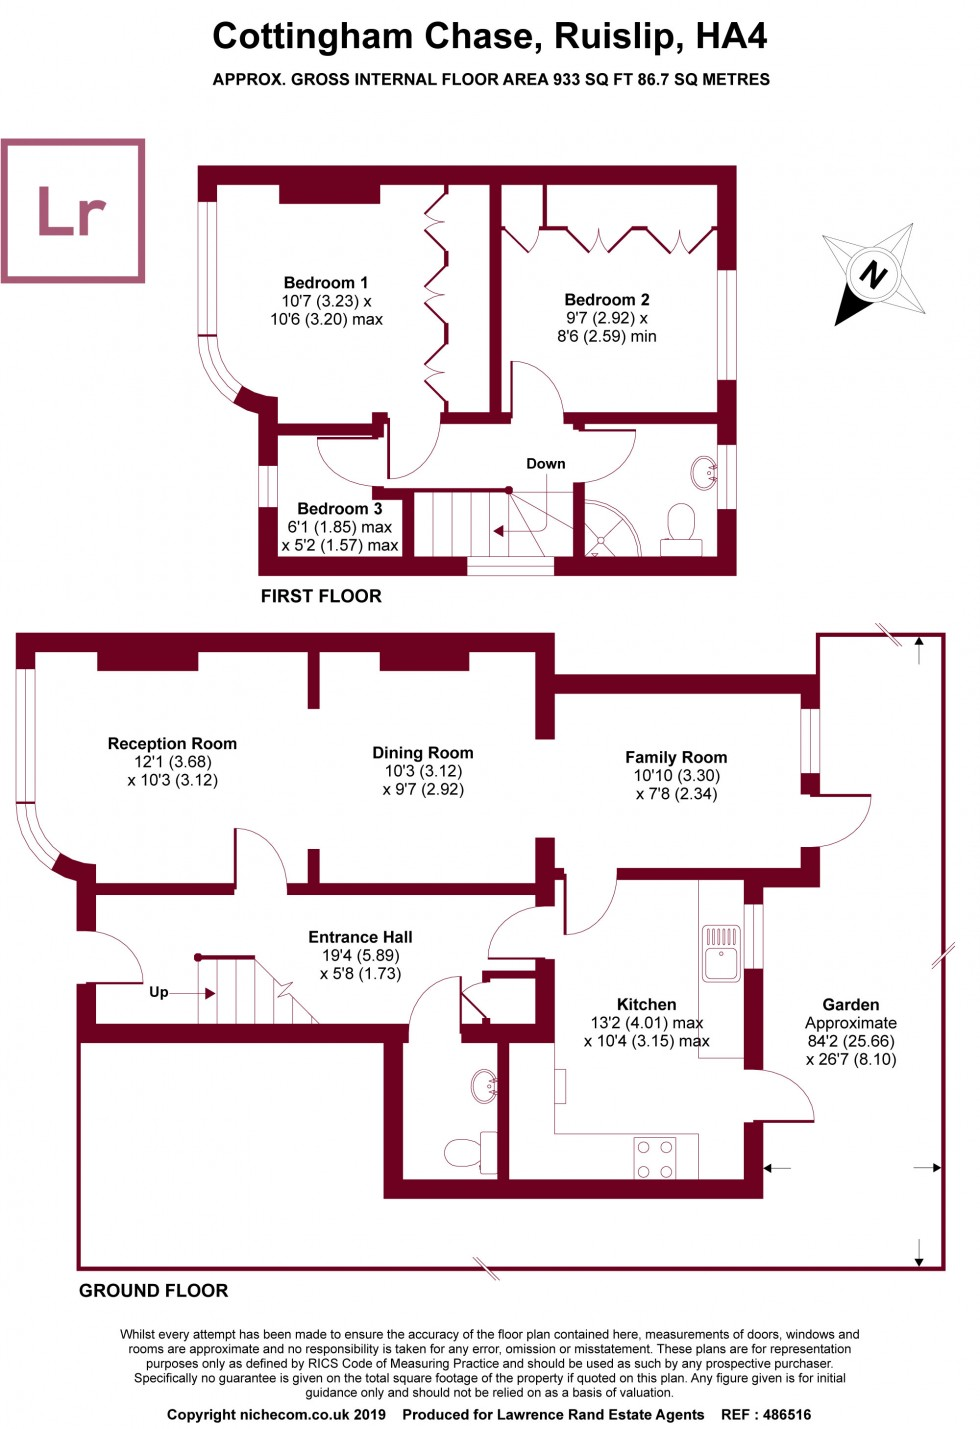 Floorplan for Cottingham Chase, Ruislip, Middlesex, HA4